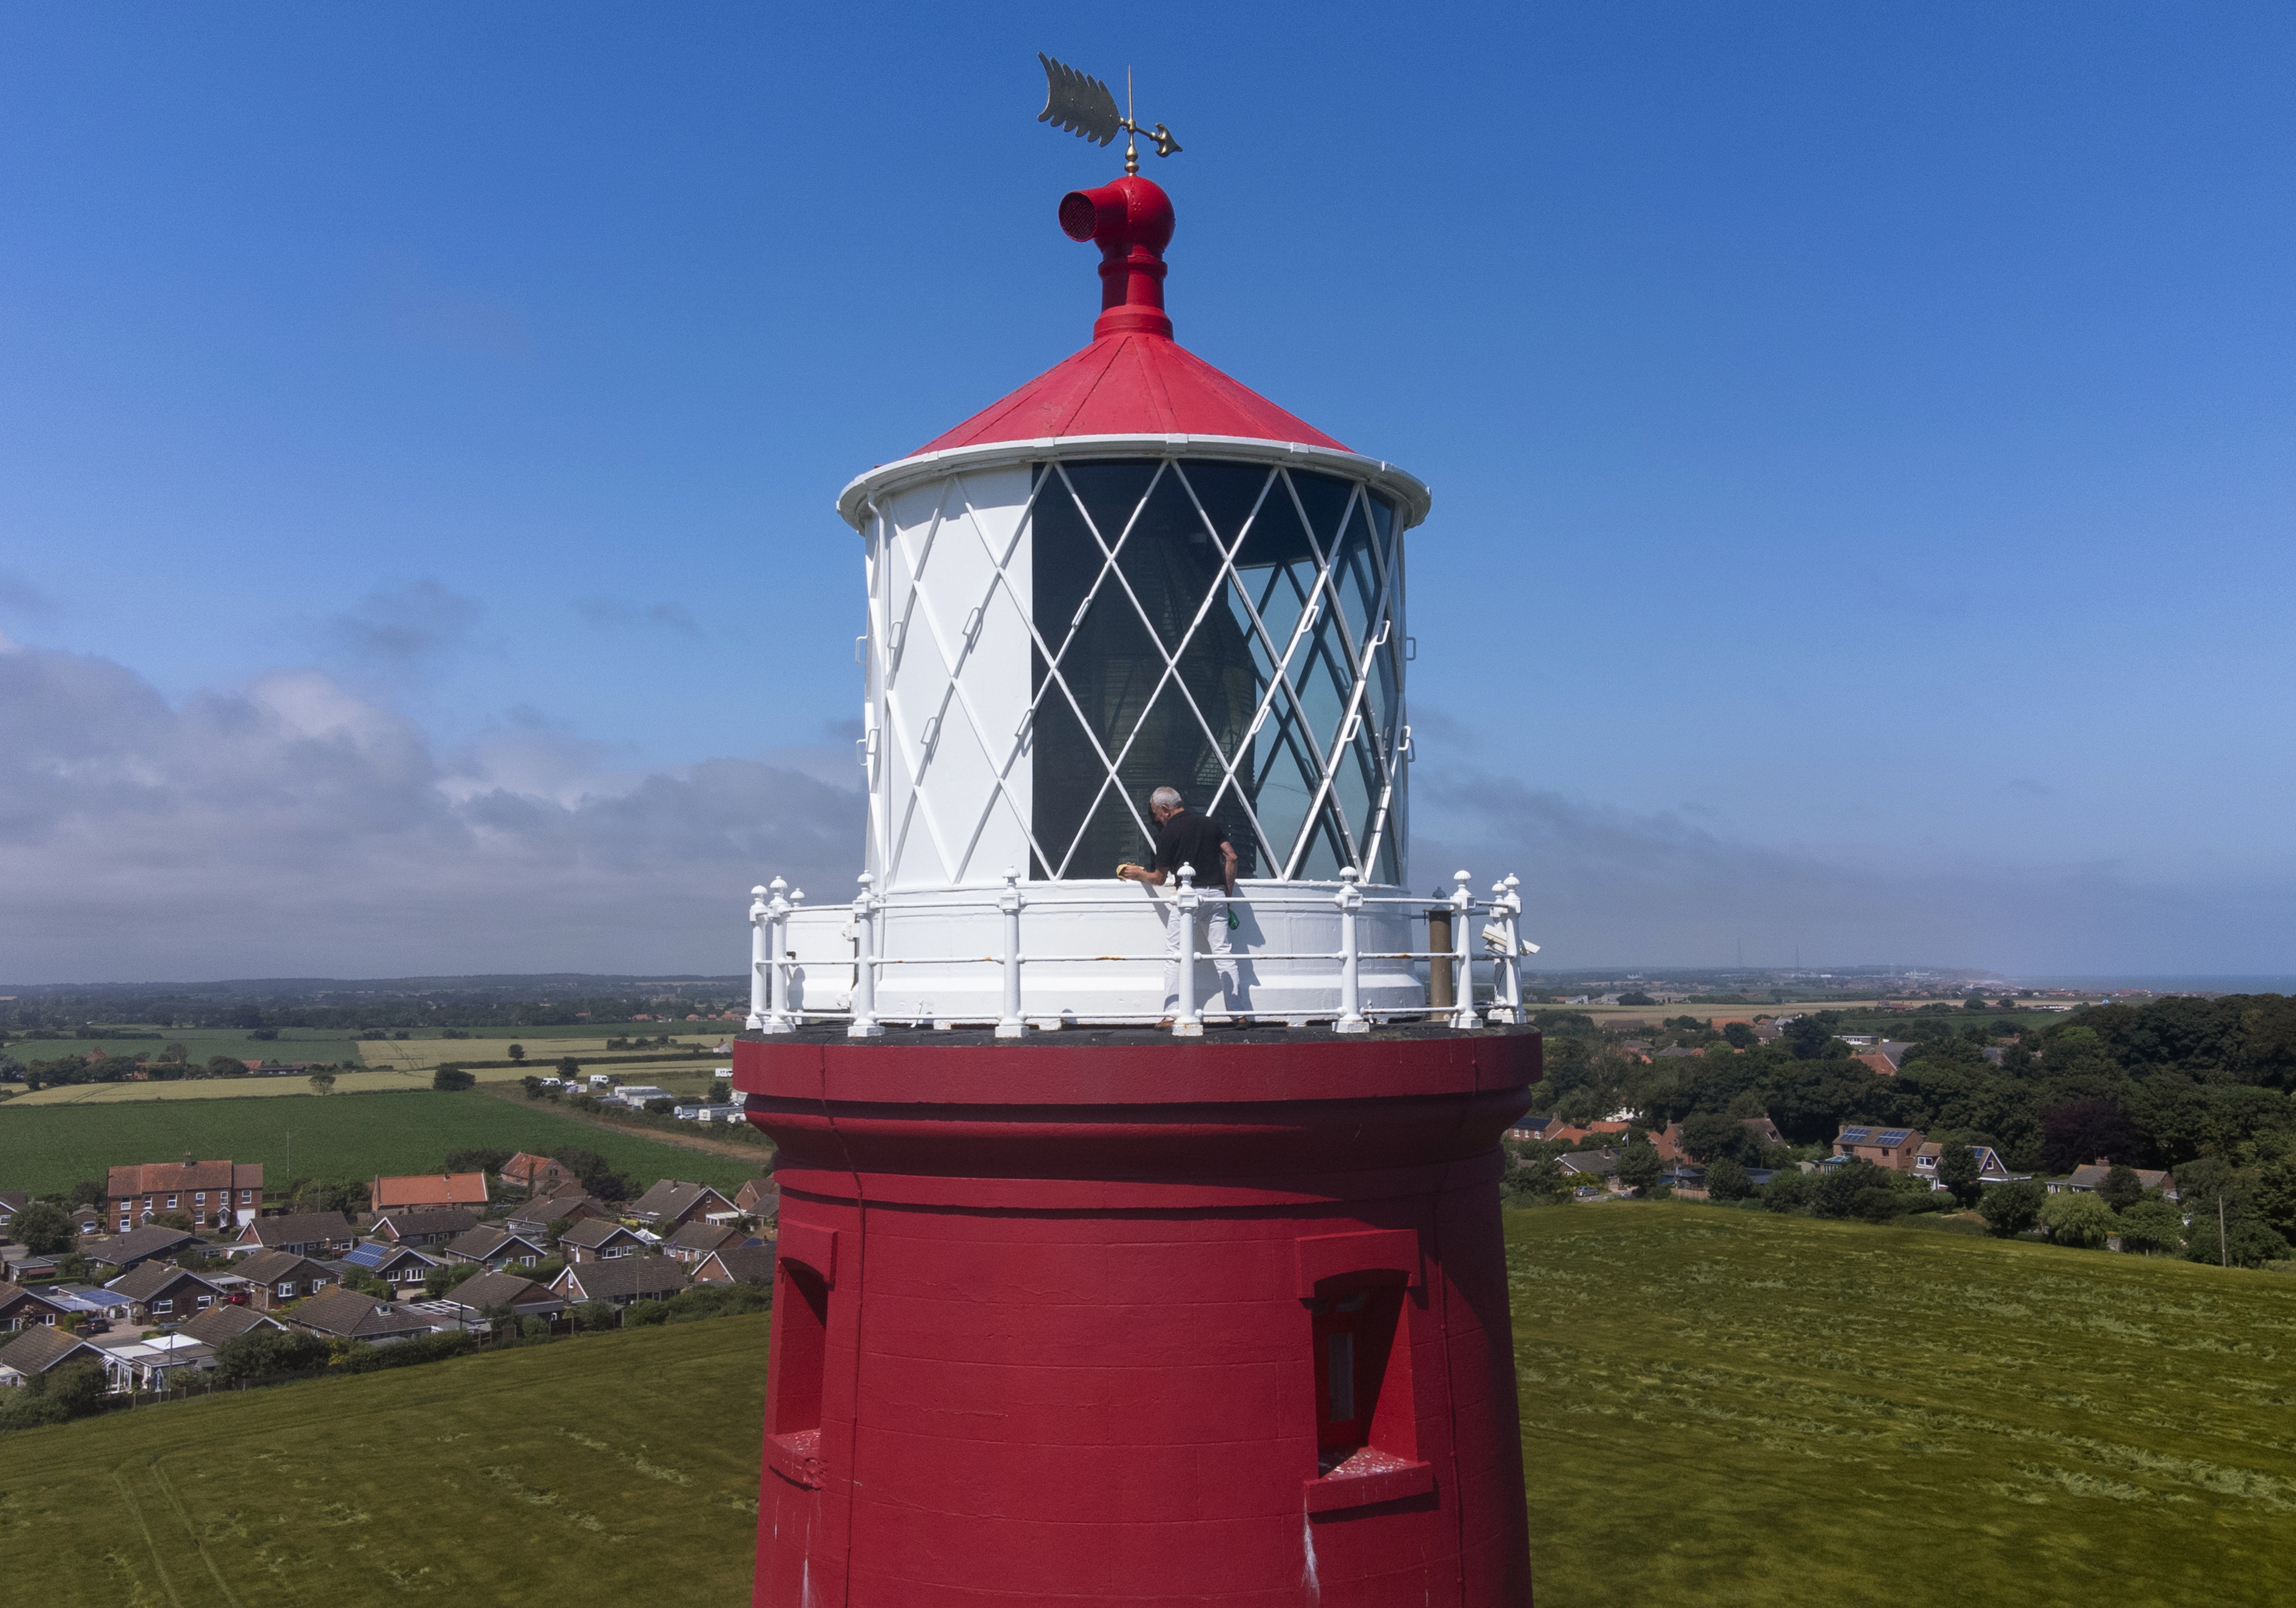 <p>The windows on the lantern room are cleaned at Happisburgh Lighthouse in Happisburgh on the North Norfolk coast as it prepares to reopen to visitors after being closed since 2019 due to the Coronavirus pandemic. Picture date: Thursday July 15, 2021.</p>